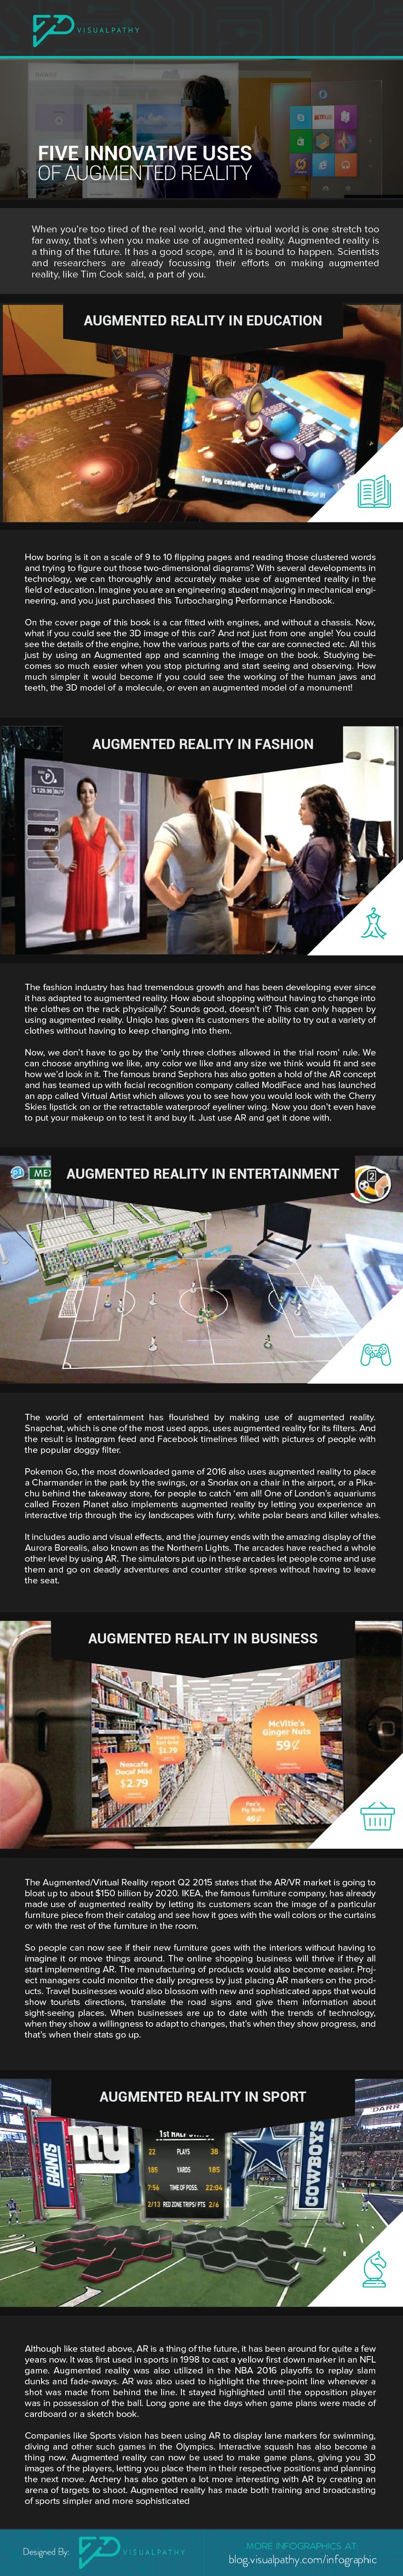 Augmented reality technology that works on computer vision based recognition algorithms to augment sound, video, graphics and other sensors.